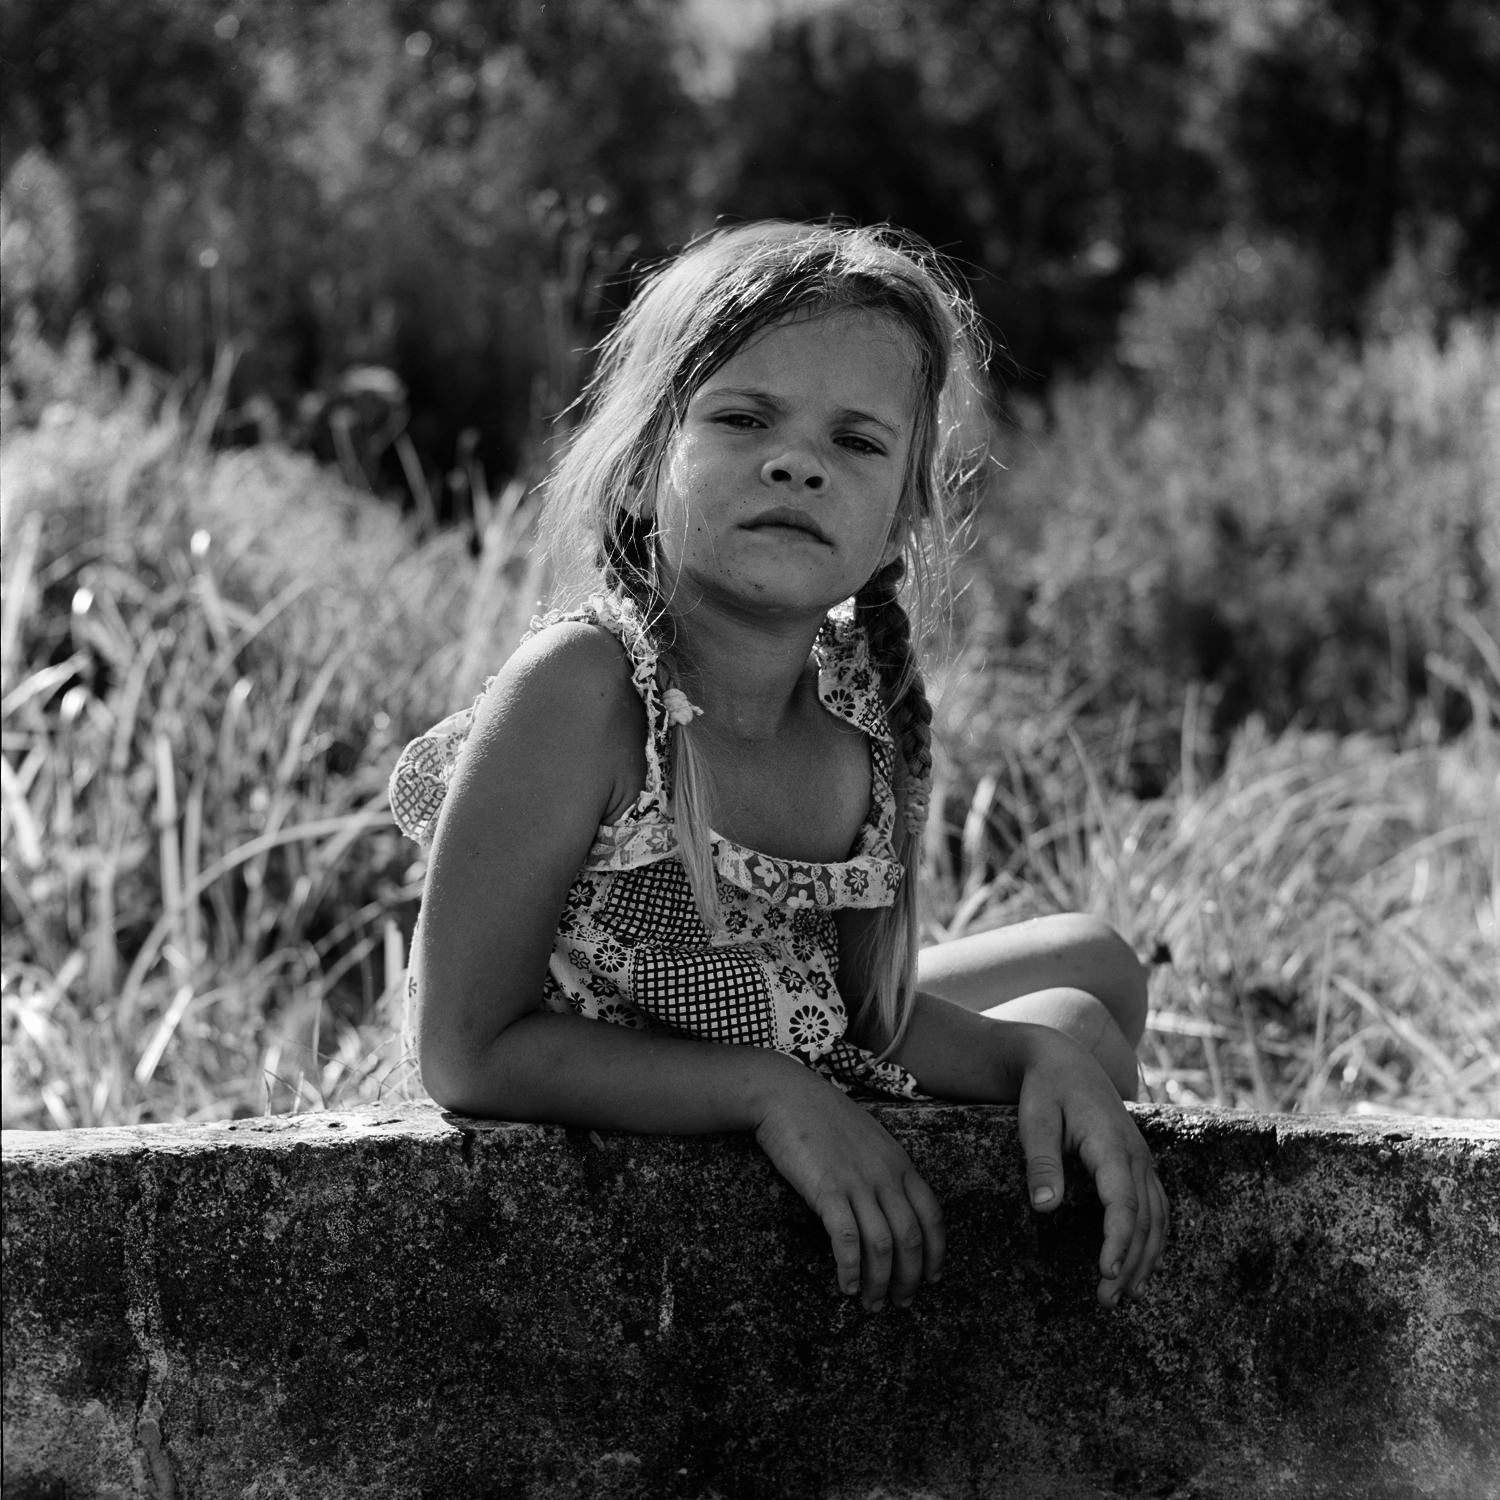 Expressive portrait of a little girl with pigtails and a light dress with her hands on a well with water on a hot summer day taken on black-white film